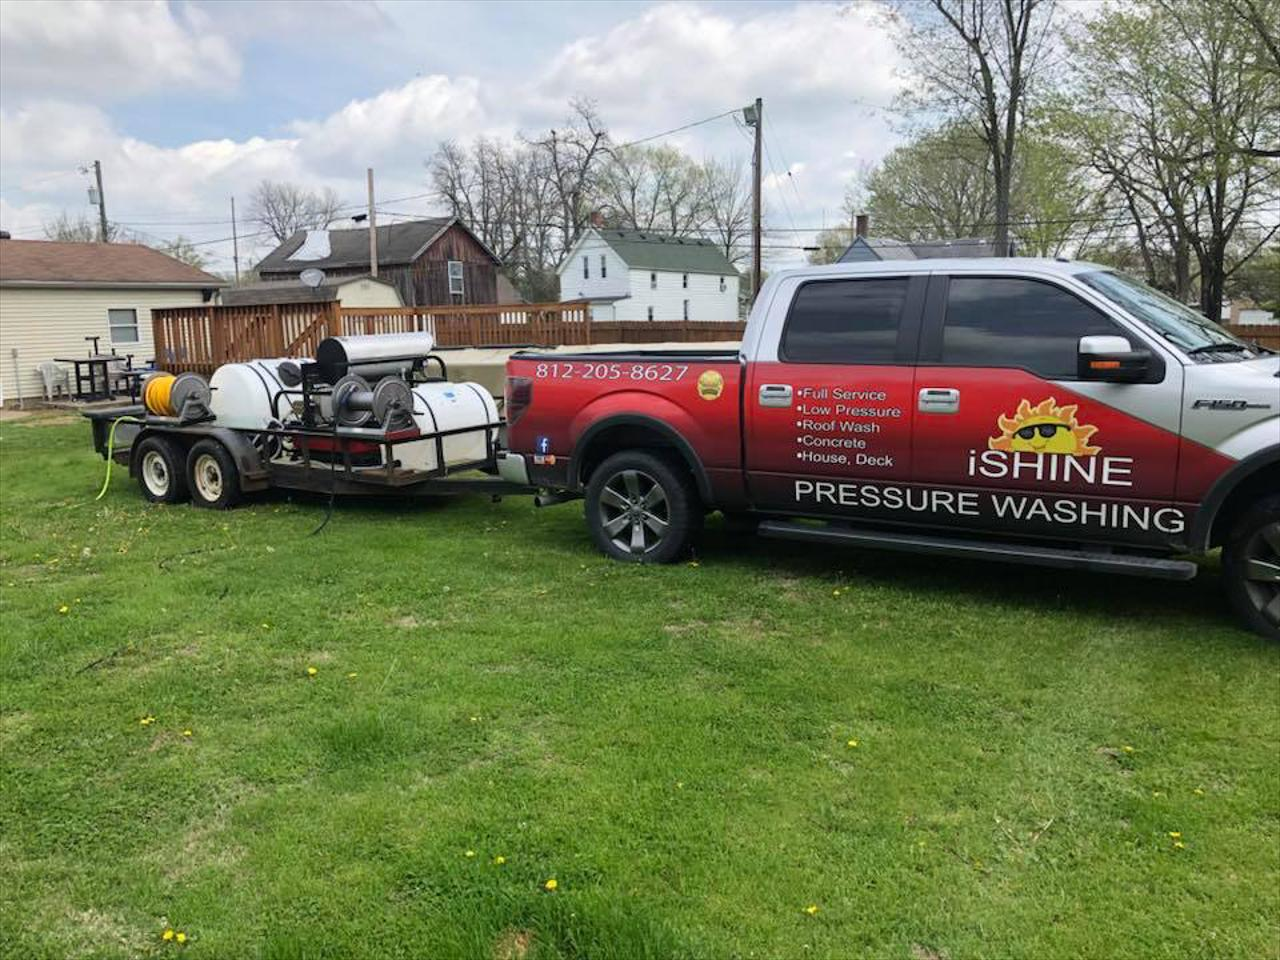 About our Evansville Pressure Washing Company | iSHINE